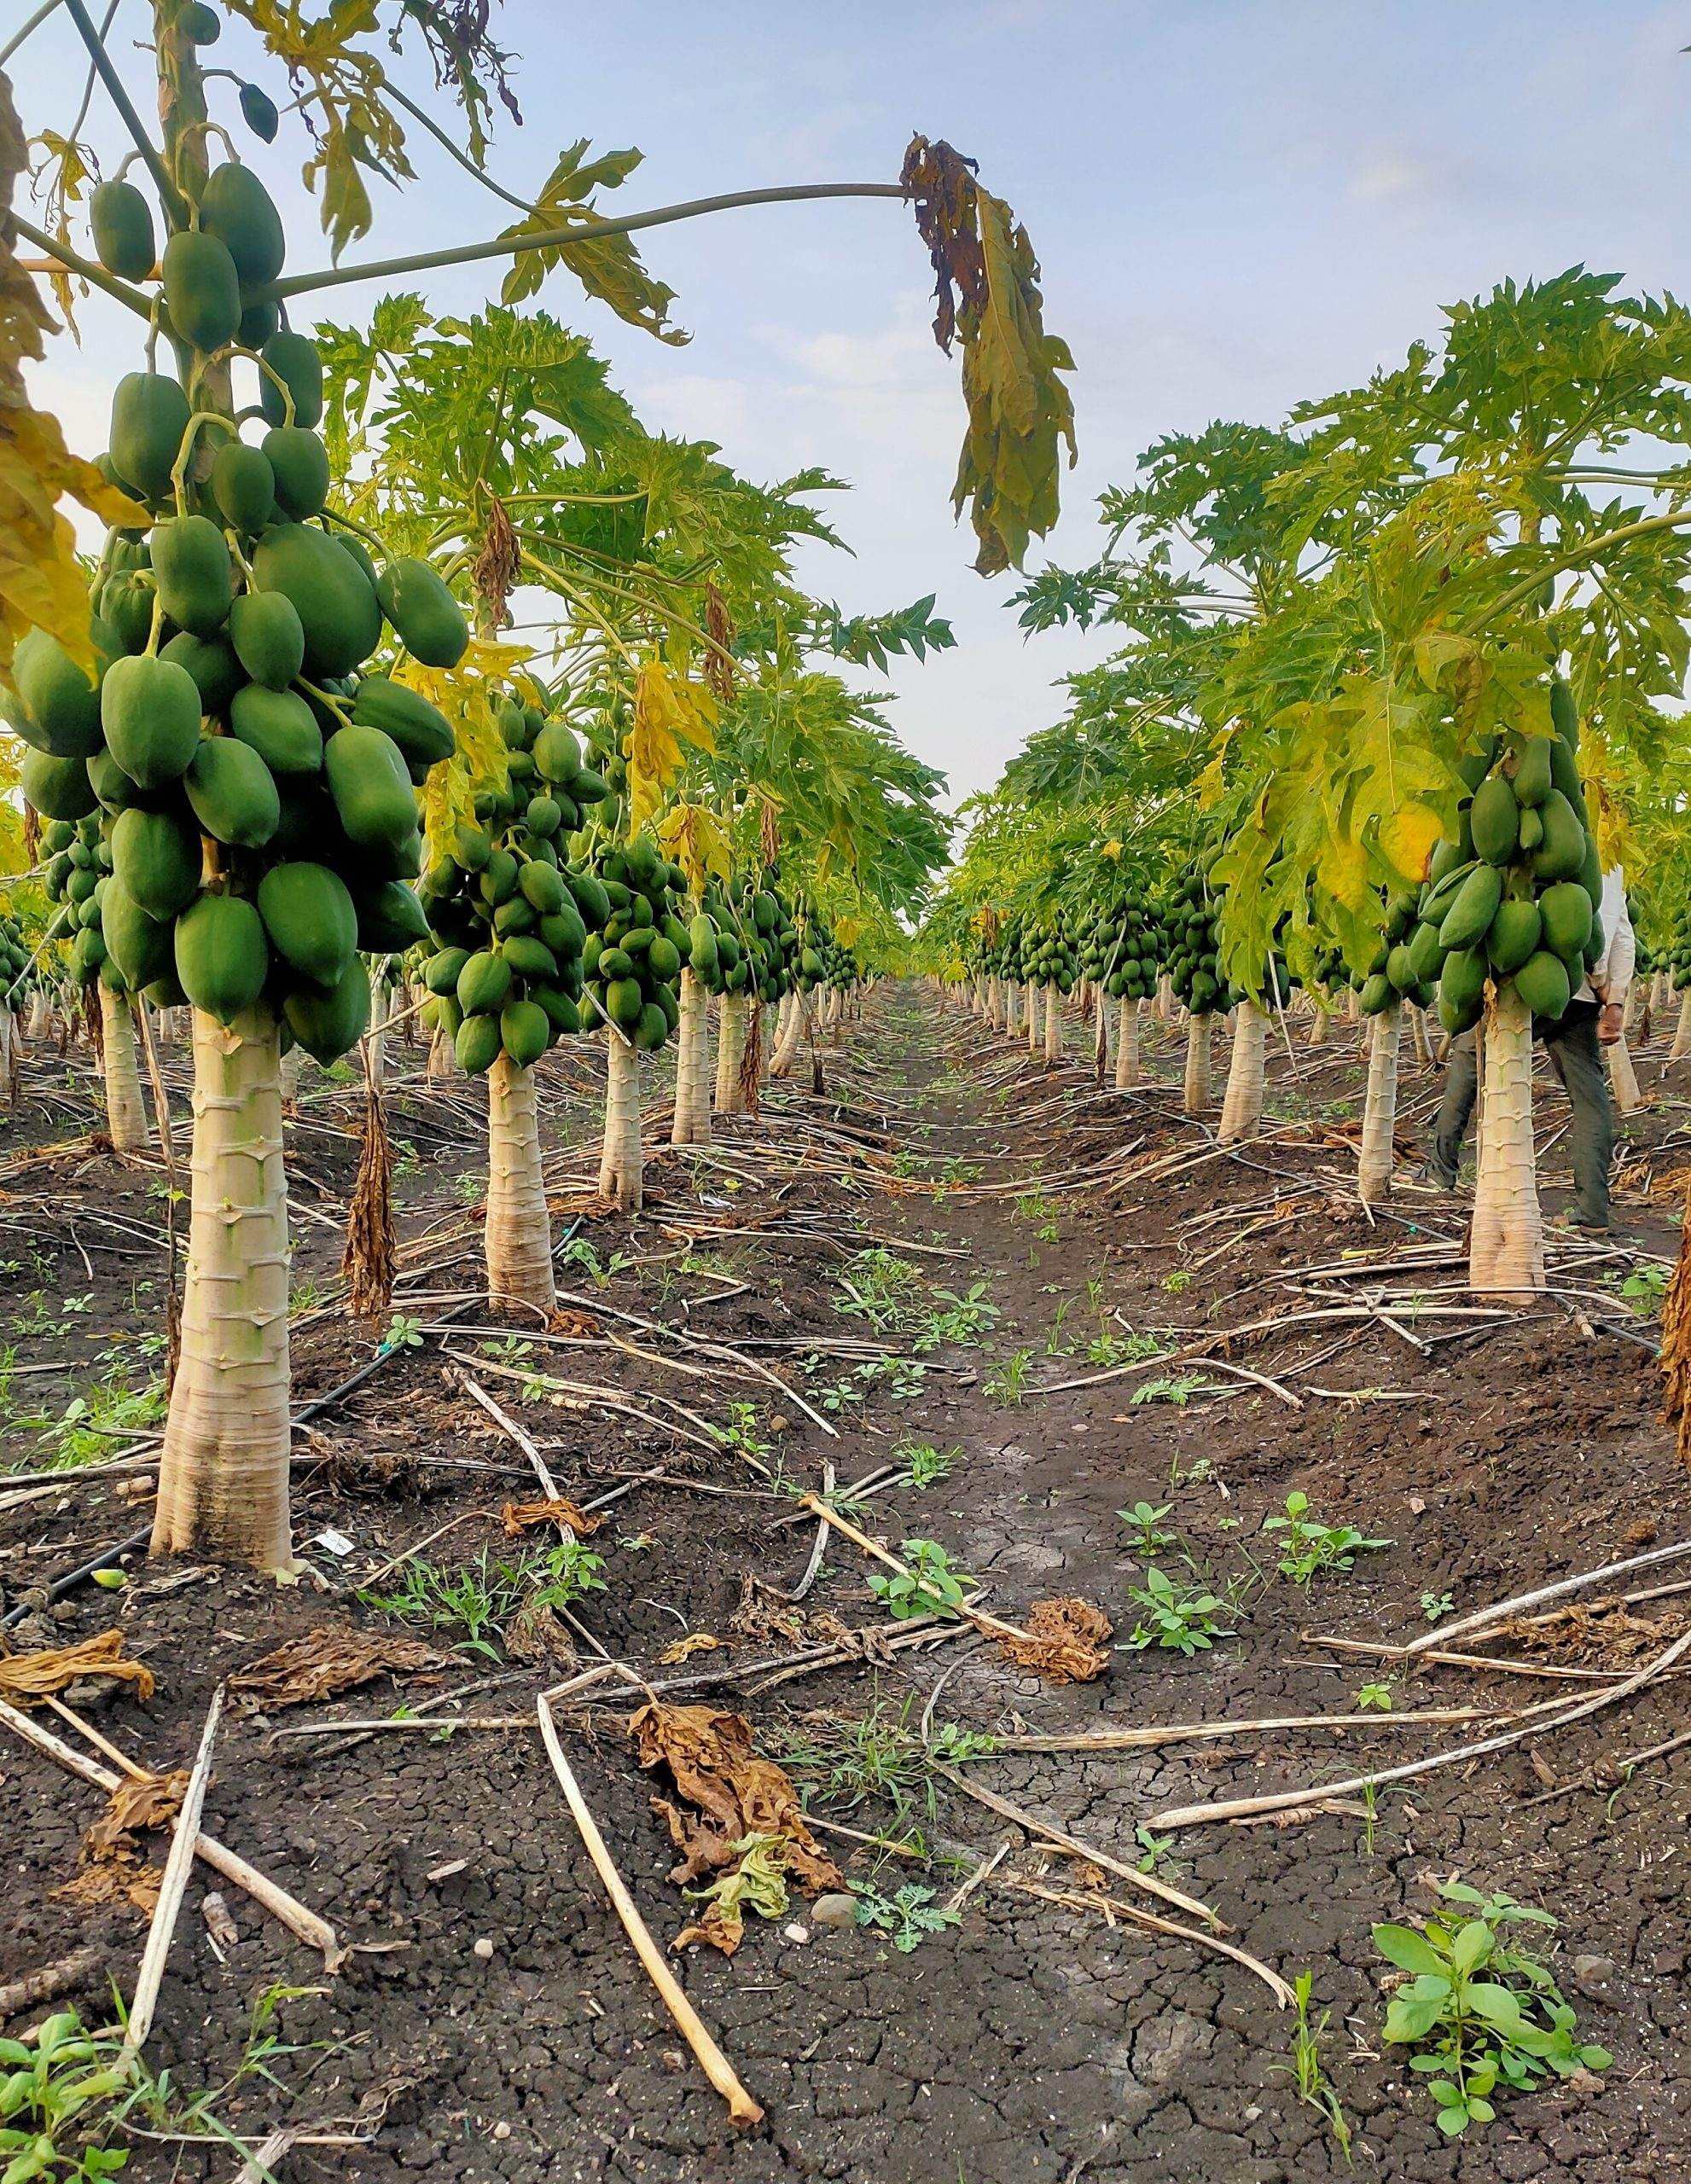 Papaya fruit plants